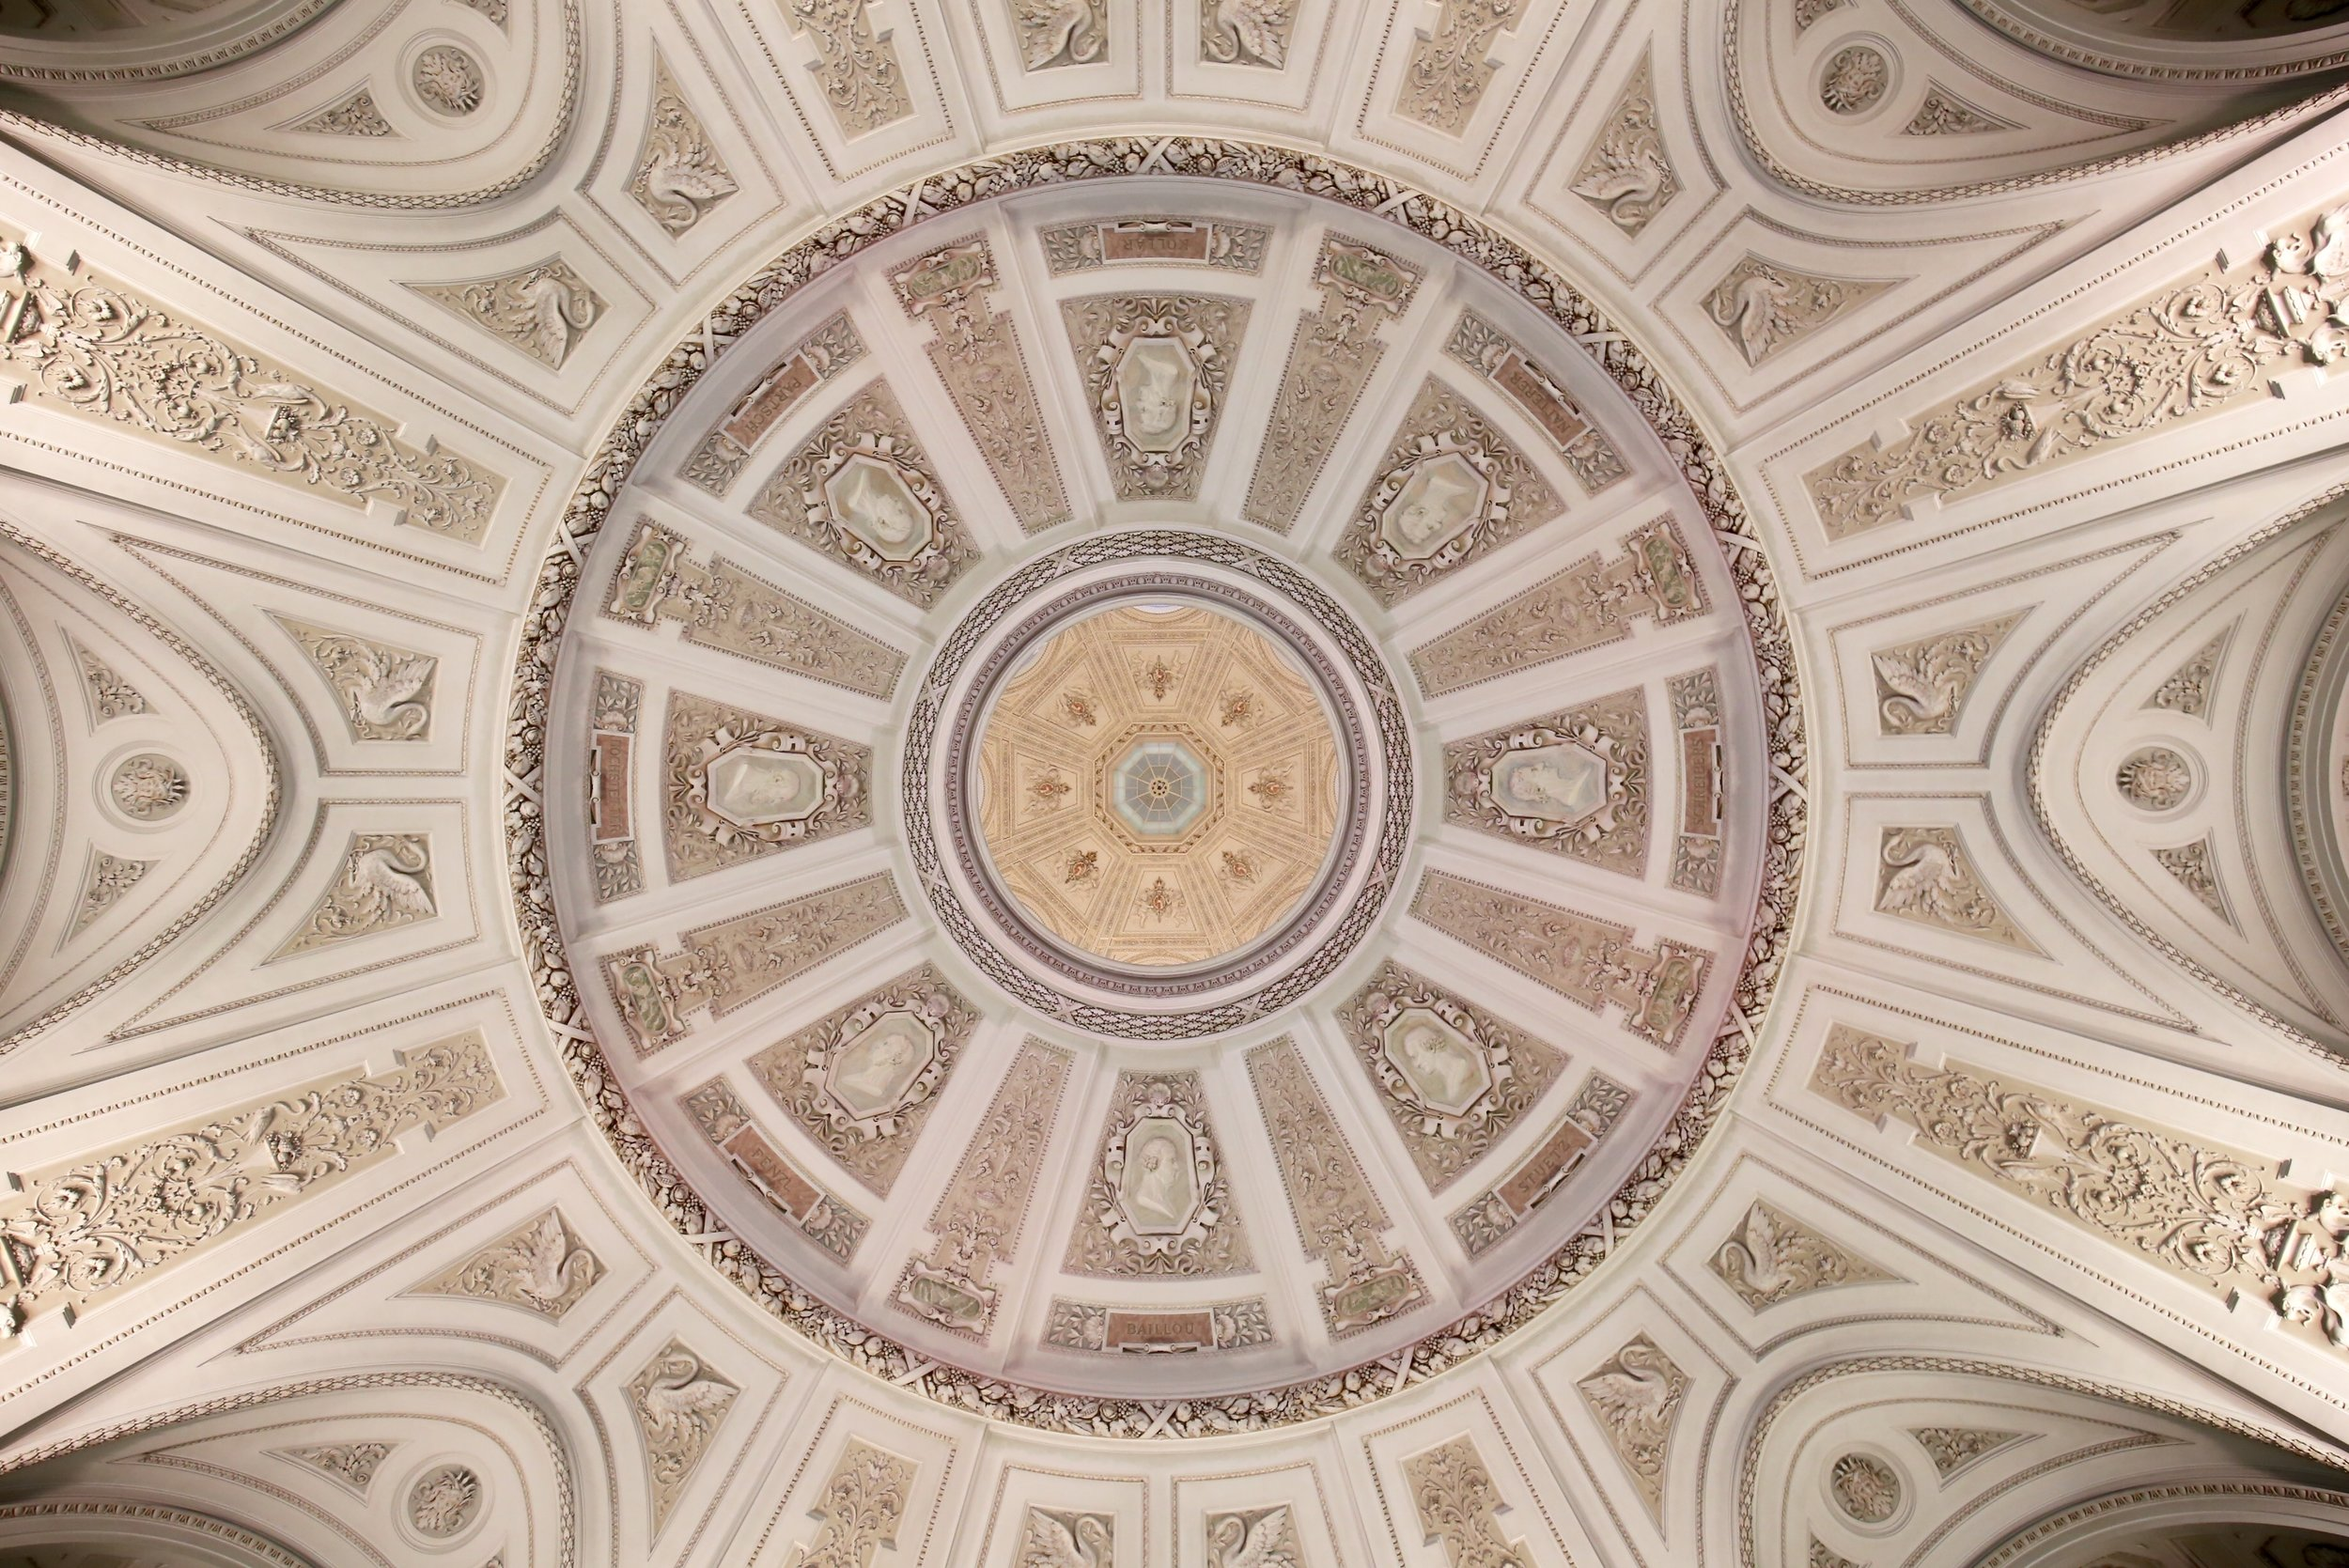 A pink domed ceiling with intricate baroque decoration.